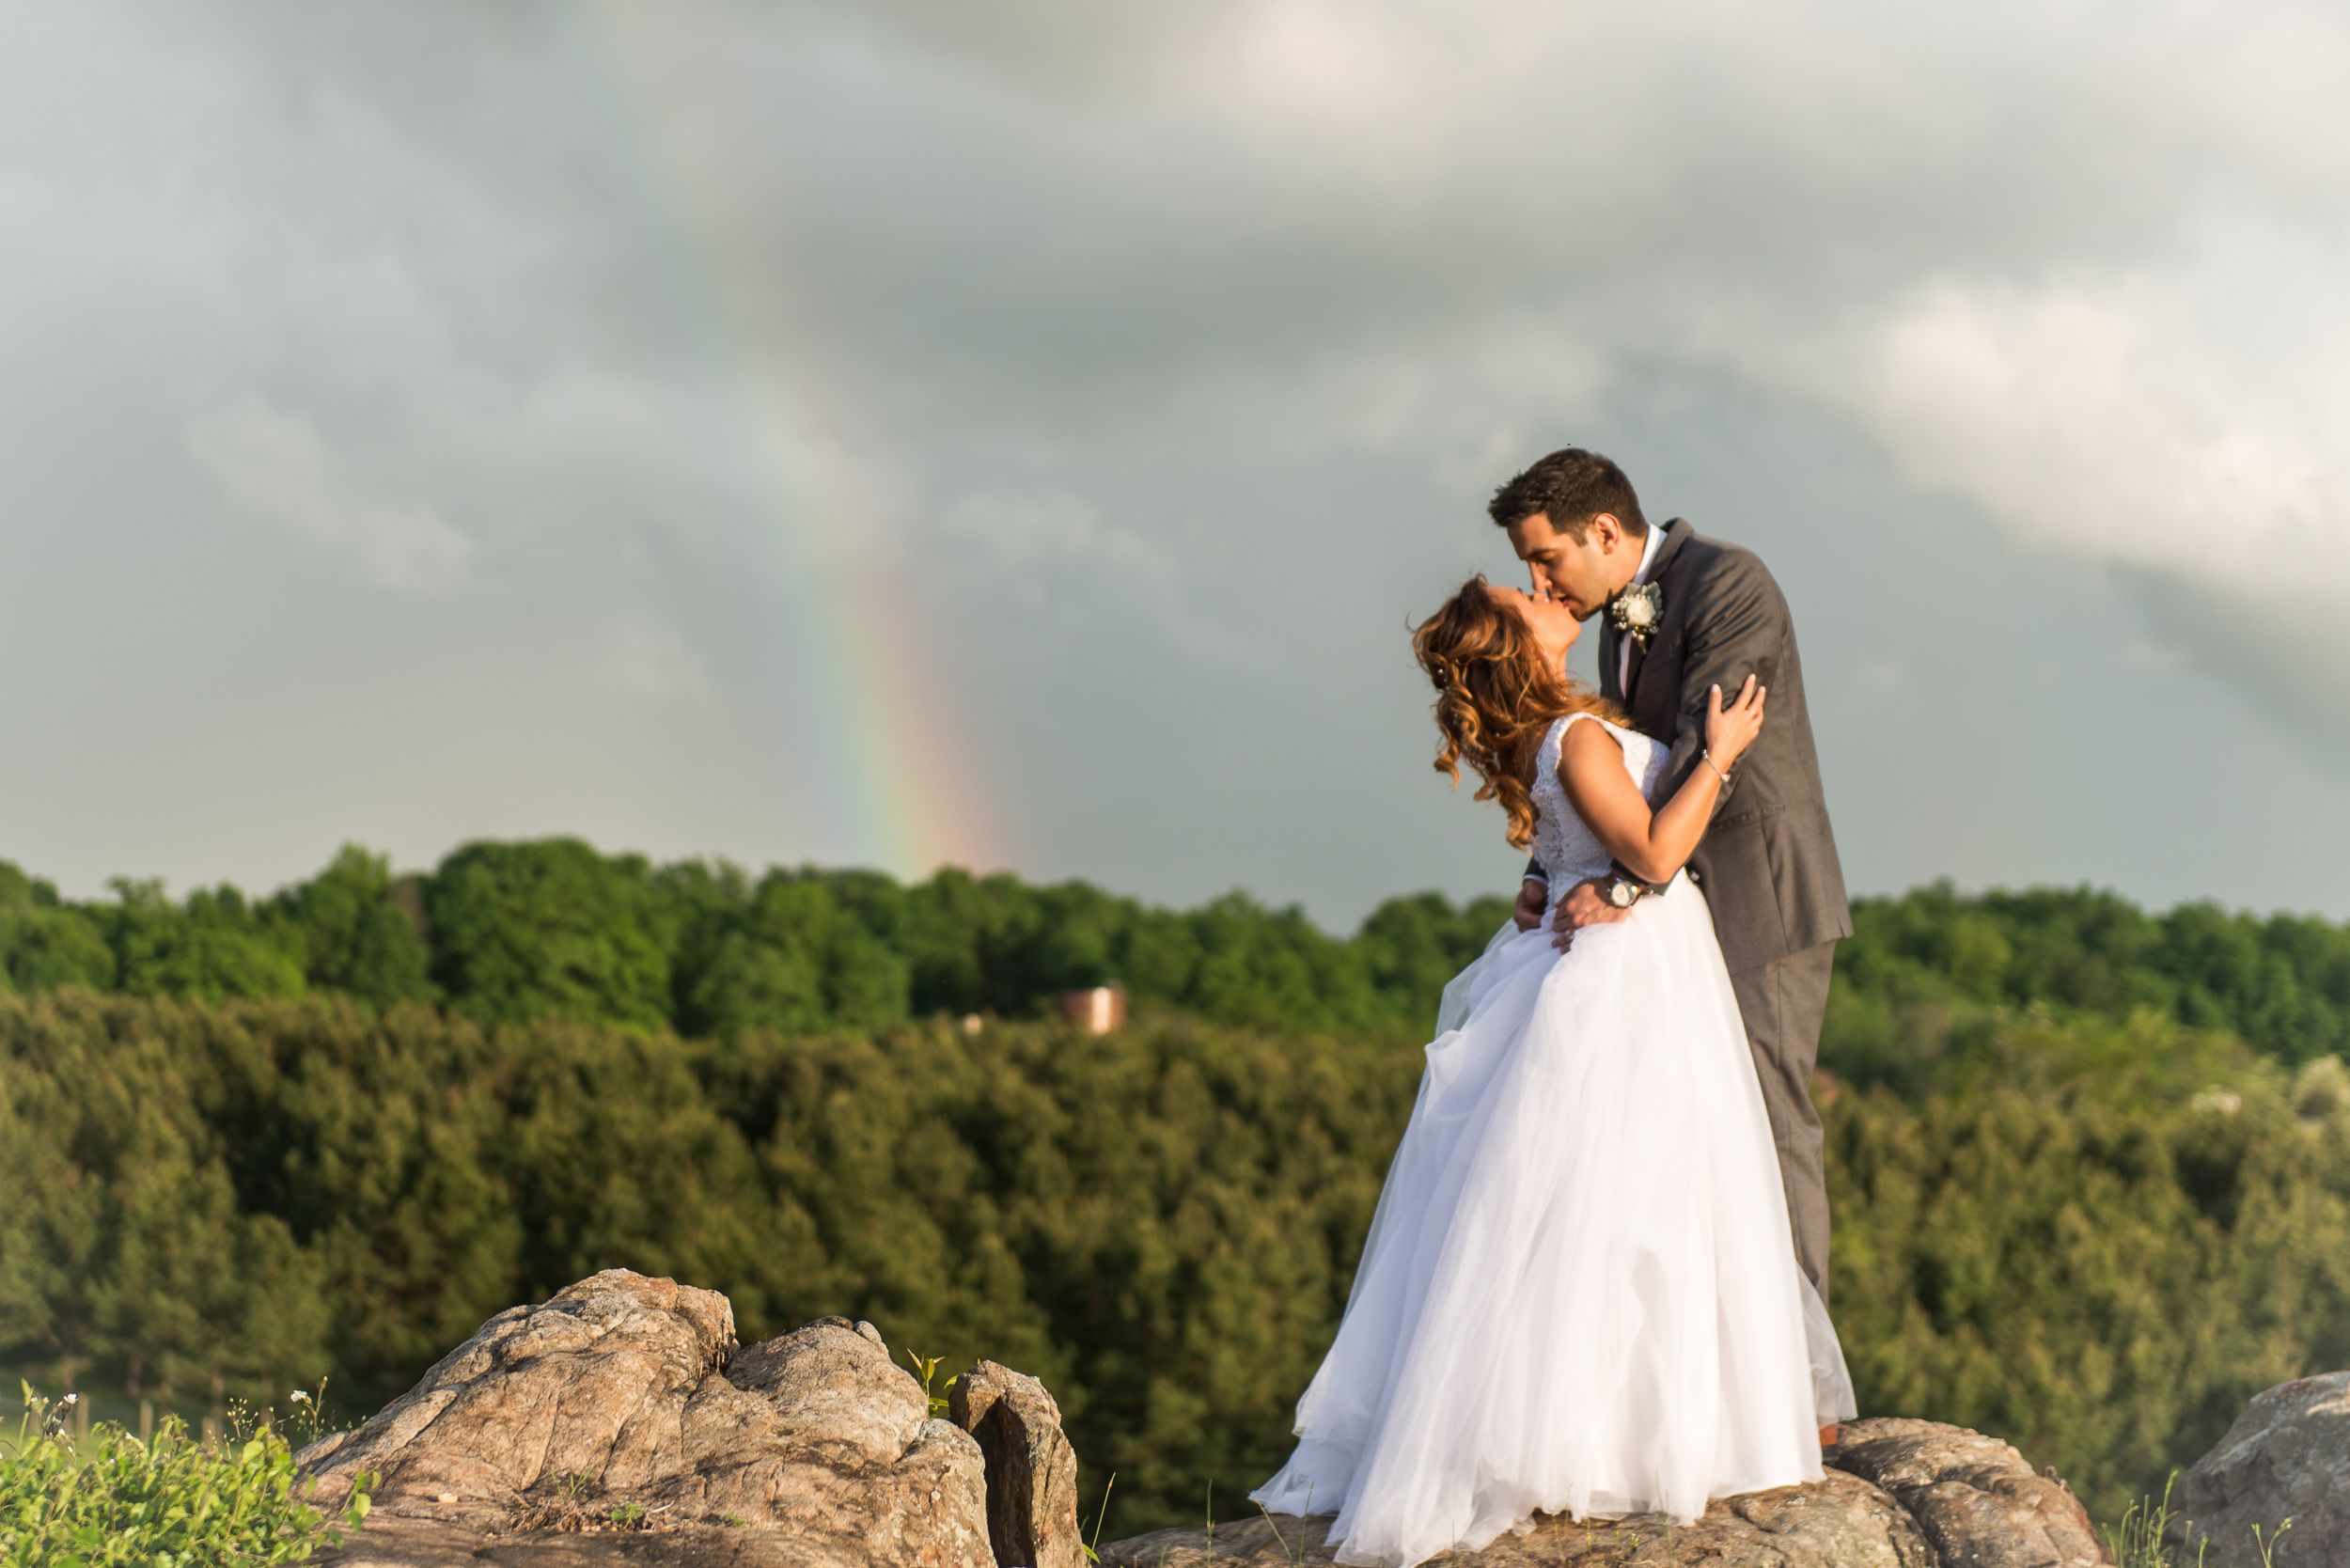 A bride and groom embrace and kiss with a rainbow in the background at Blue Valley Vineyard and Winery in Delaplane, Virginia